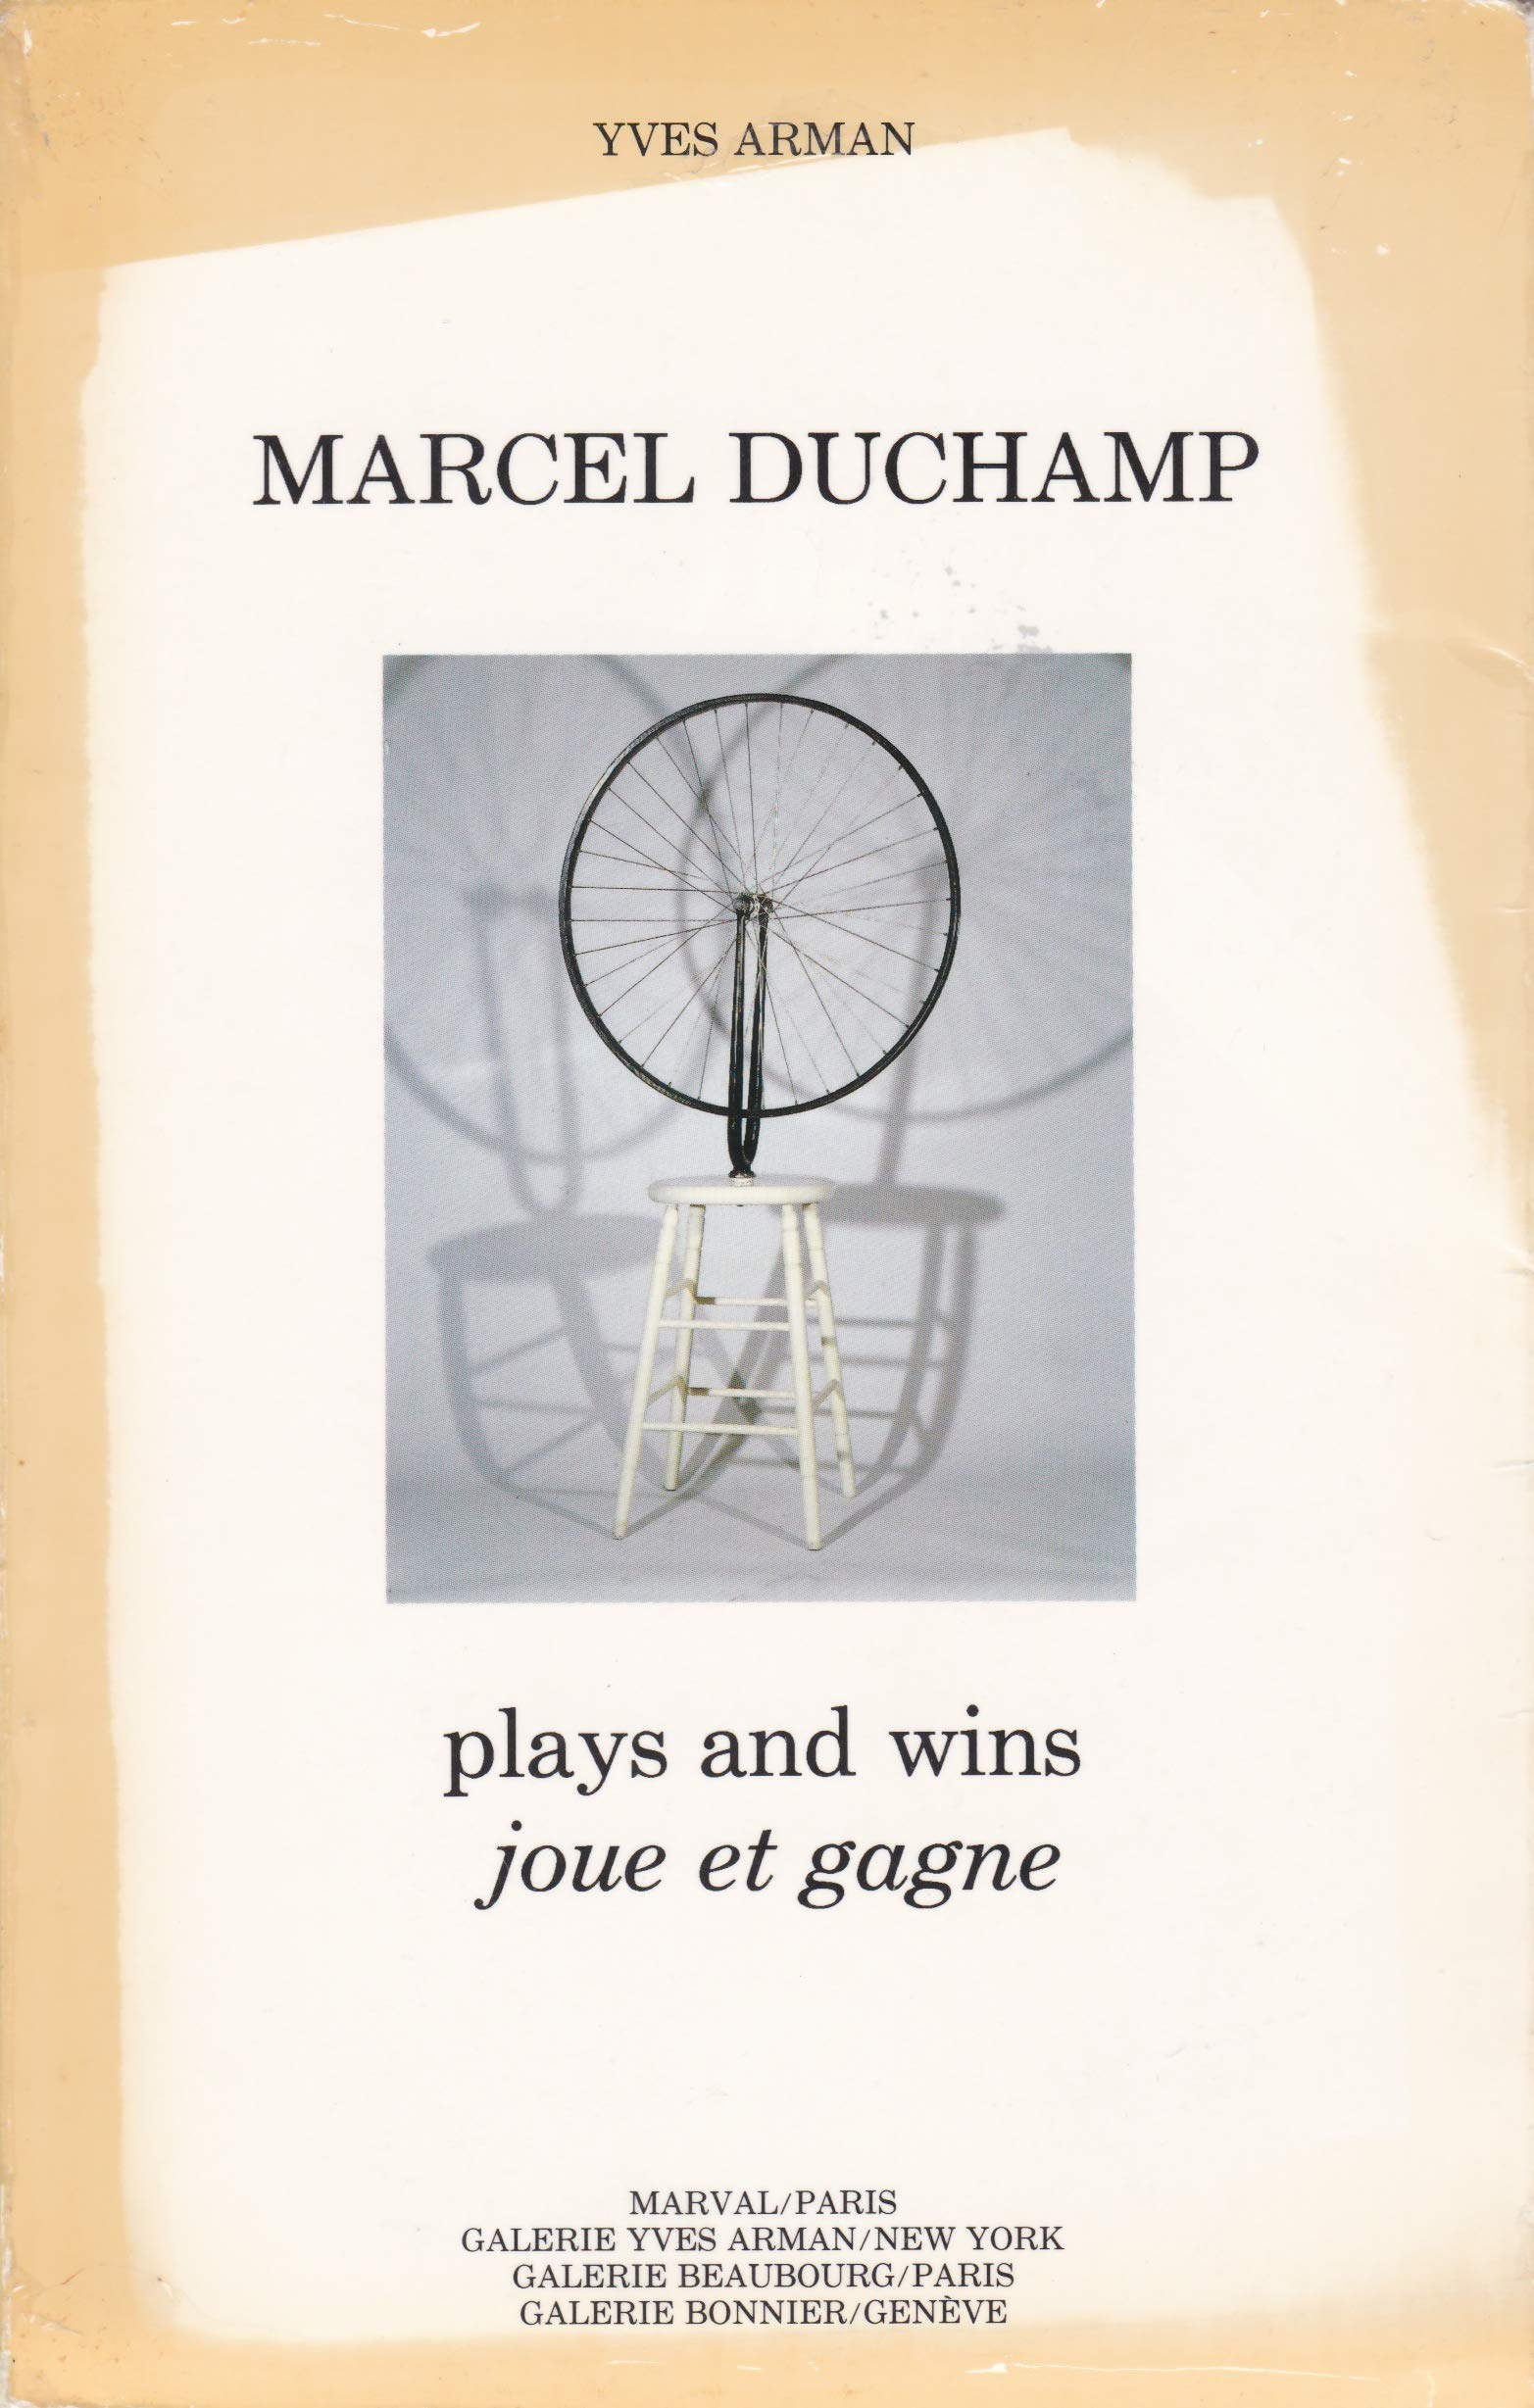 Marcel Duchamp plays and wins joue et gagne Marval 1984: Amazon.es: Arman Yves: Libros